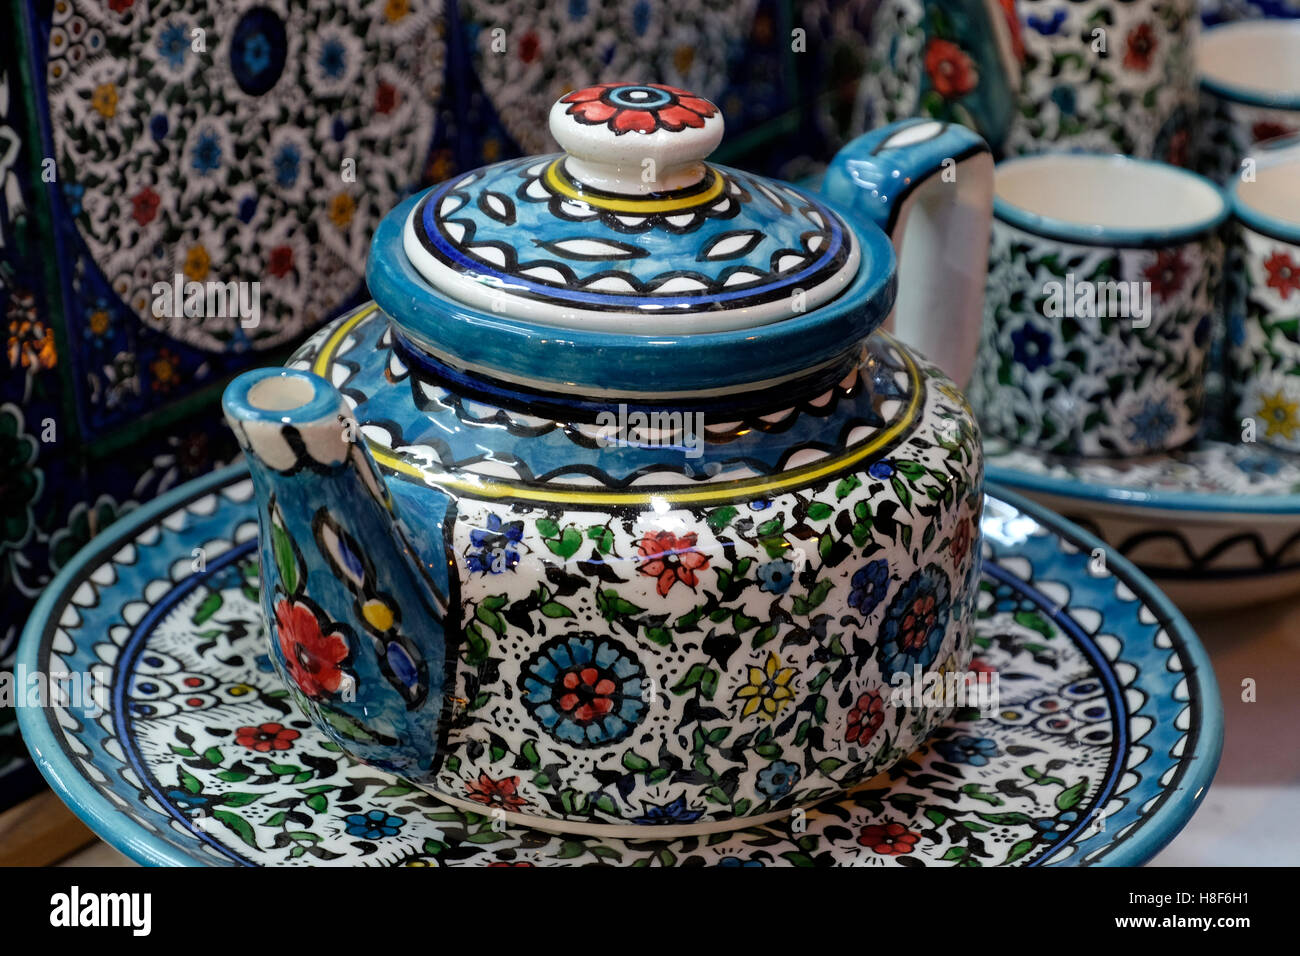 Handpainted ceramic tea pot at an armenian tile workshop east handpainted ceramic tea pot at an armenian tile workshop east jerusalem israel dailygadgetfo Images